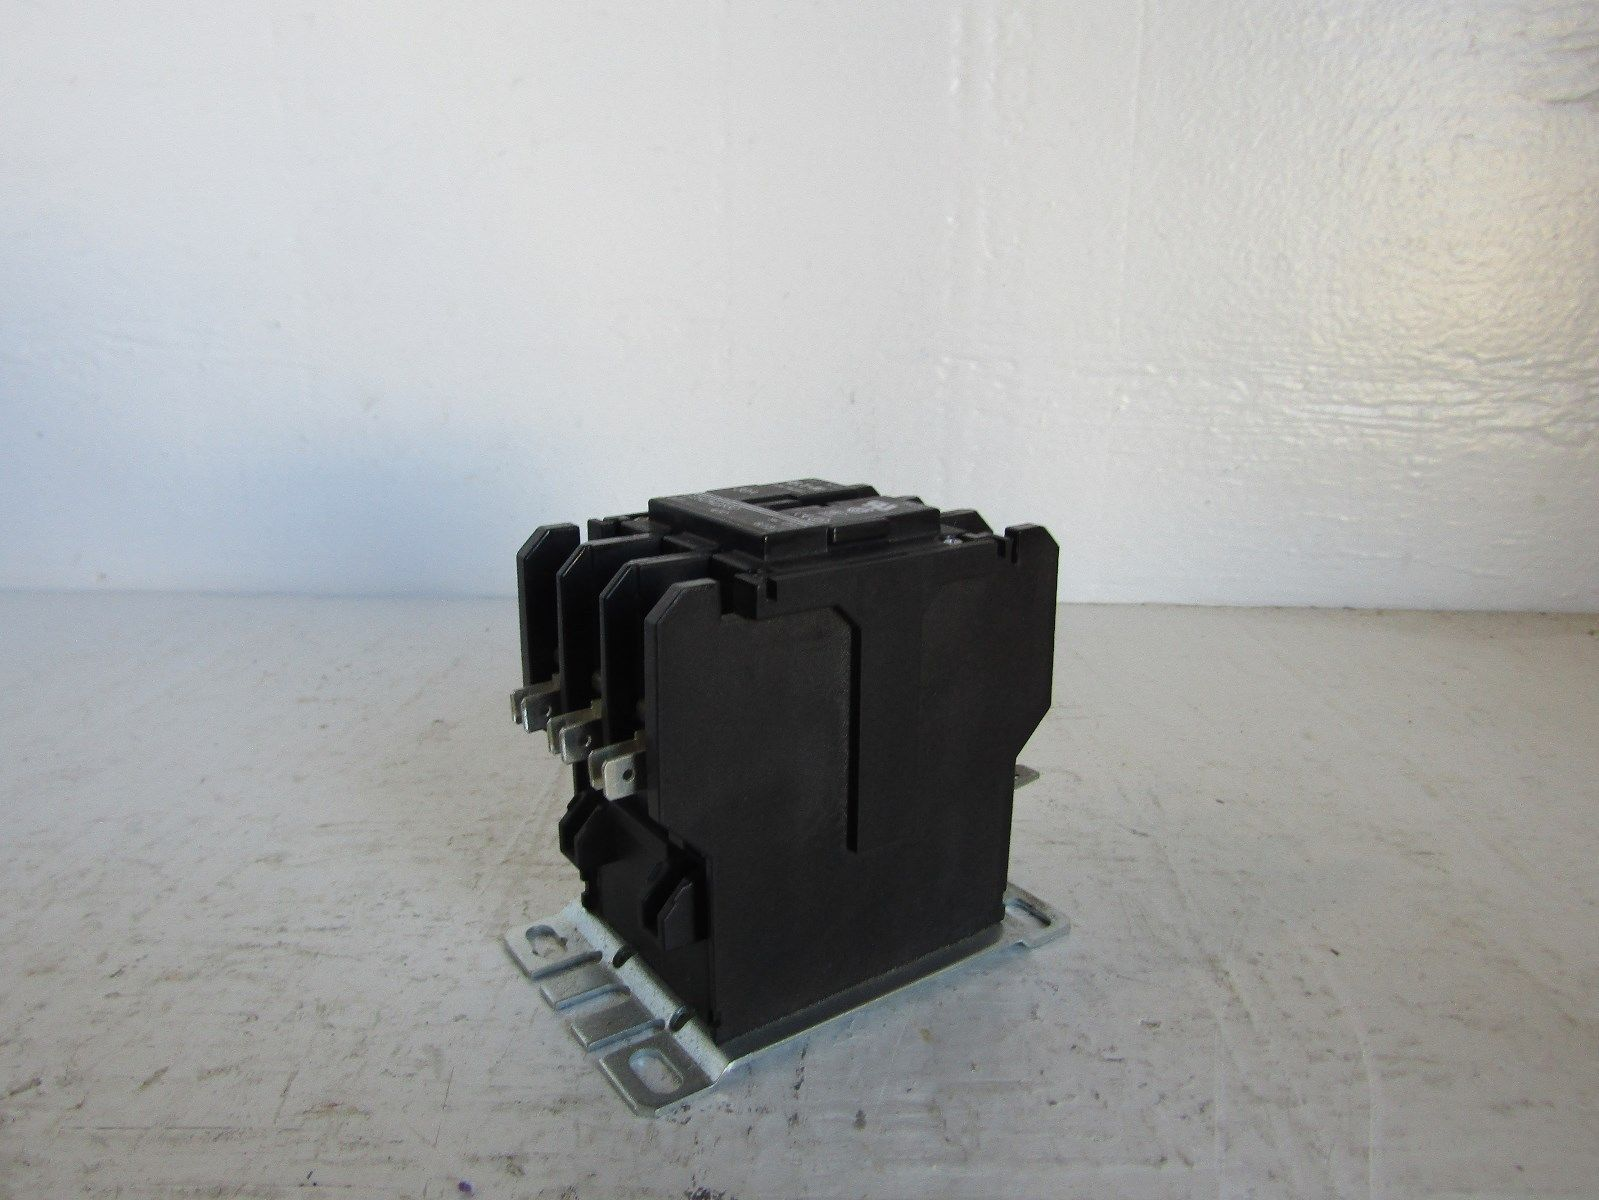 CUTLER HAMMER C25DND330 30 AMP 3 POLE CONTACTOR 120 VOLT COIL 331989252131 2?fit\=1000%2C750\&ssl\=1 c25dnd330 wiring diagram 3 phase contactor wiring diagram start Eaton C25dnf340 Contactor at creativeand.co